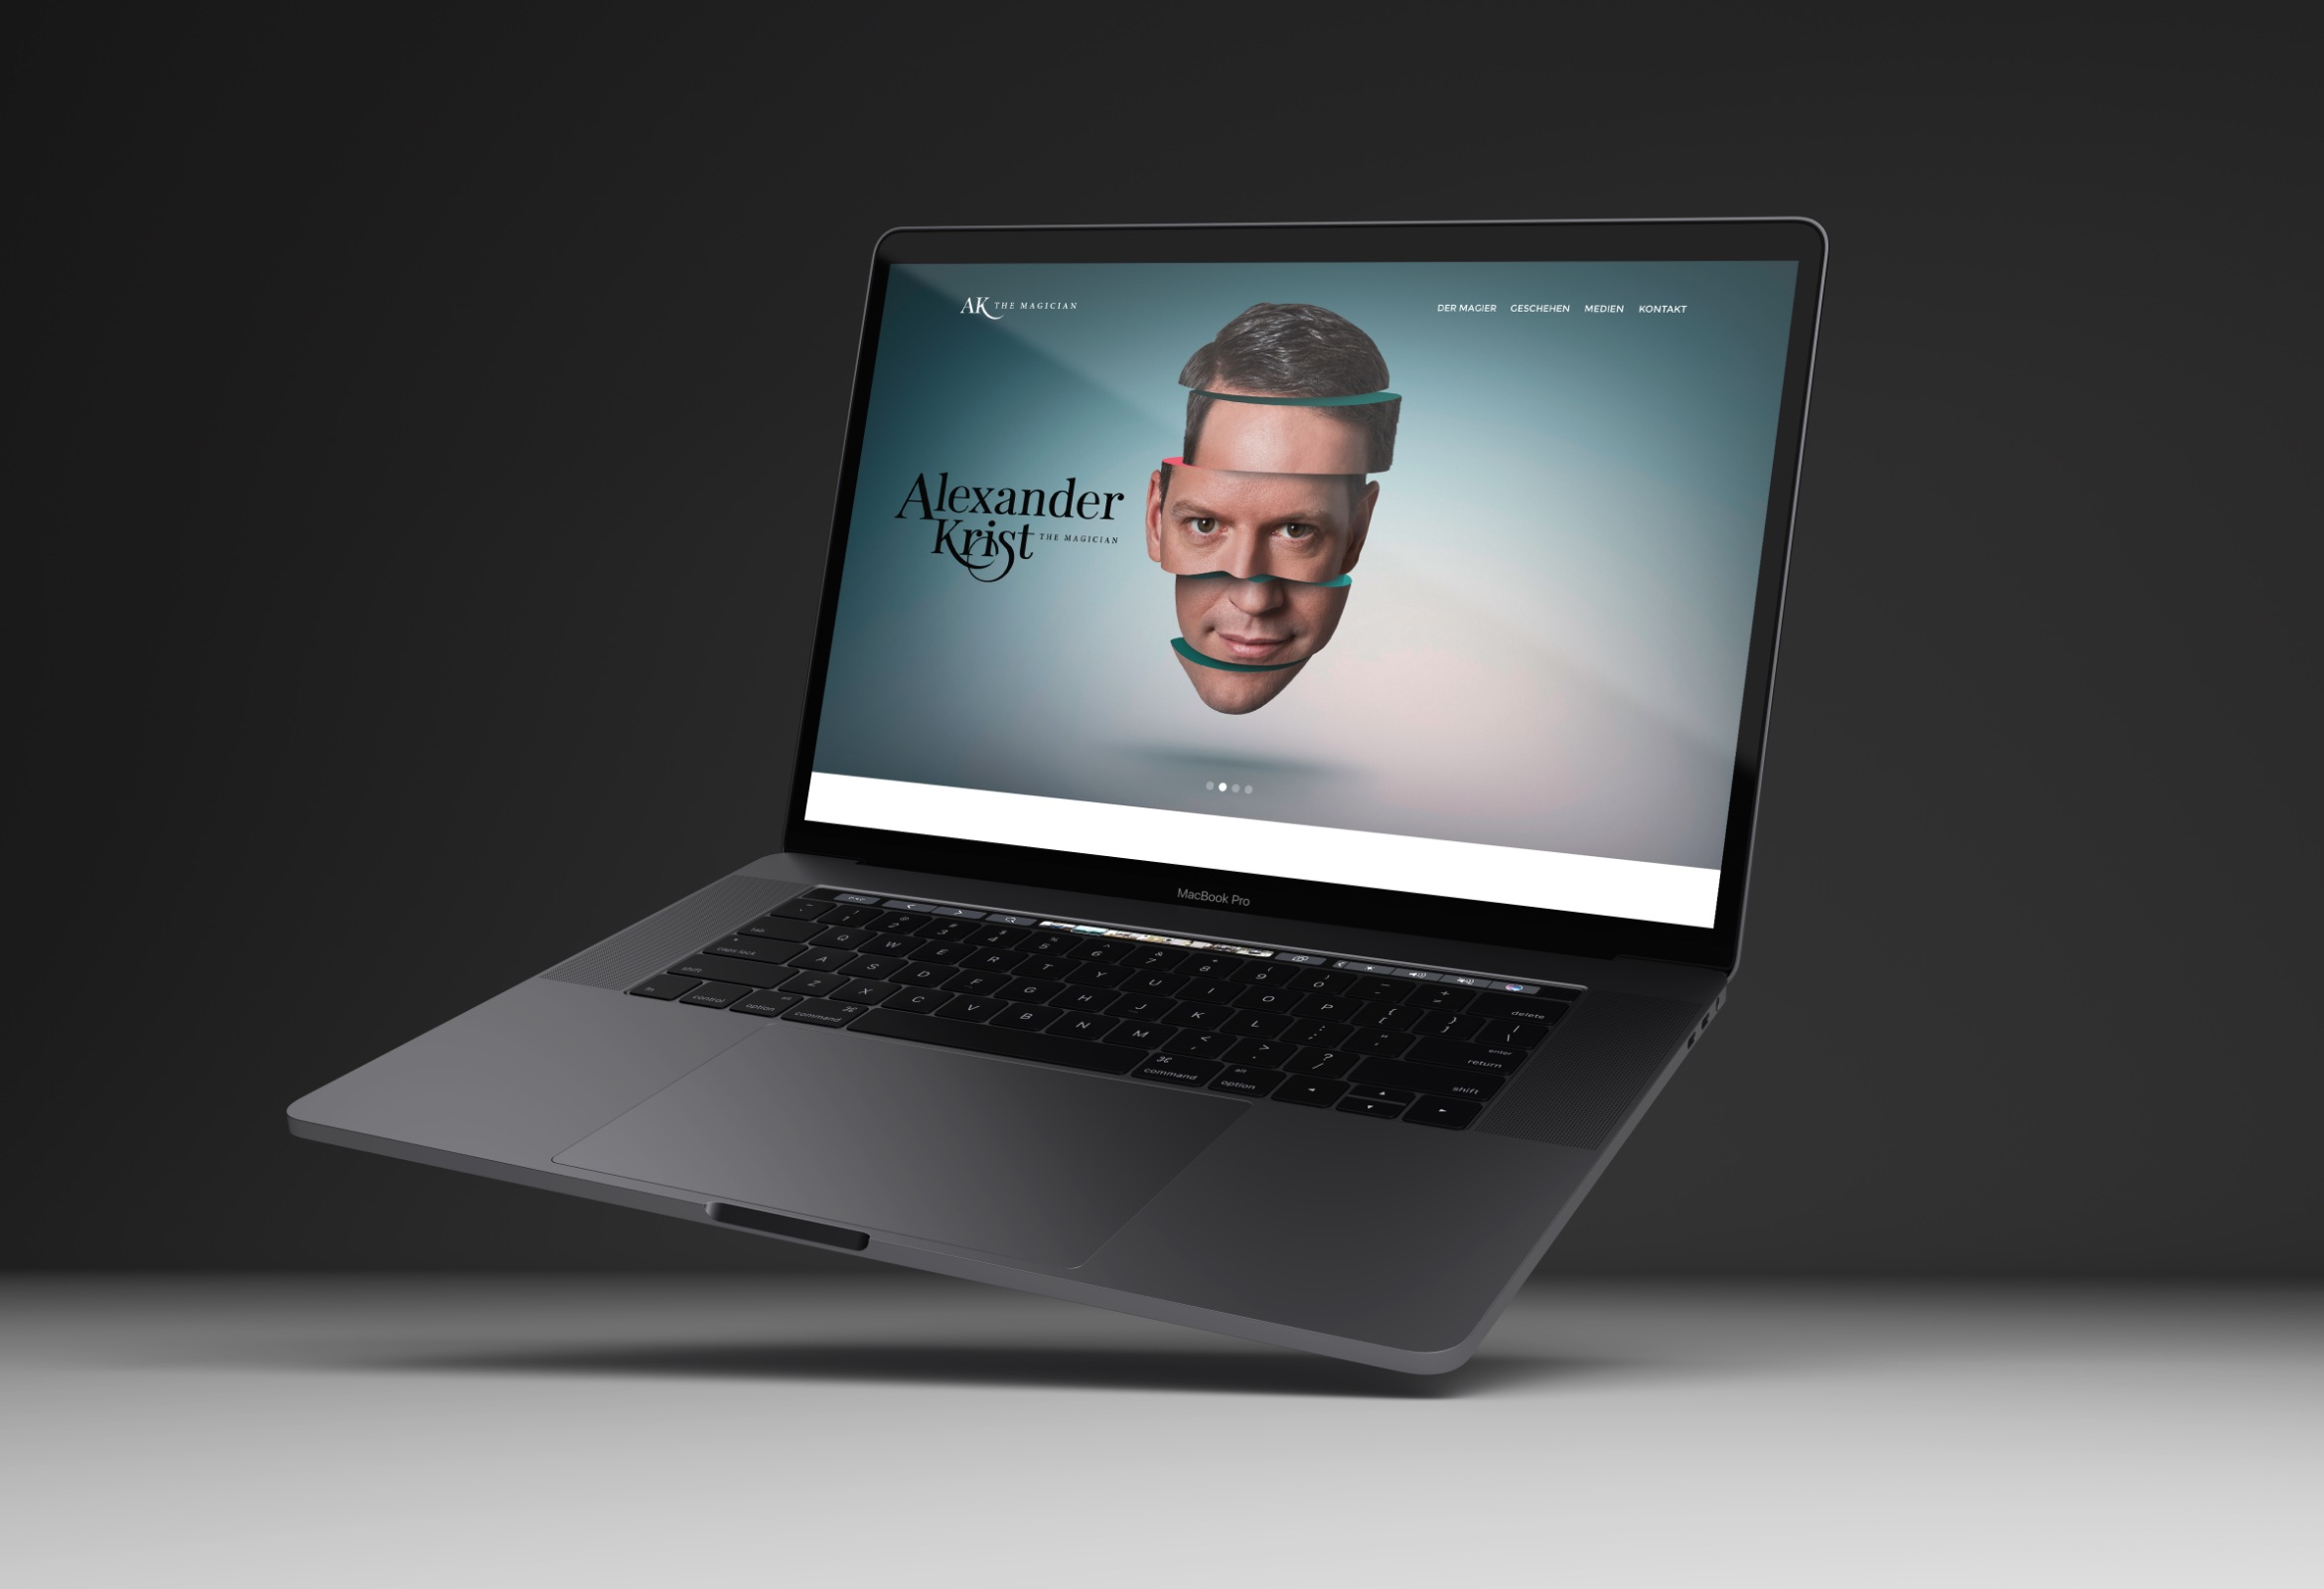 Q2 Werbeagentur, Krist-Munch, Website